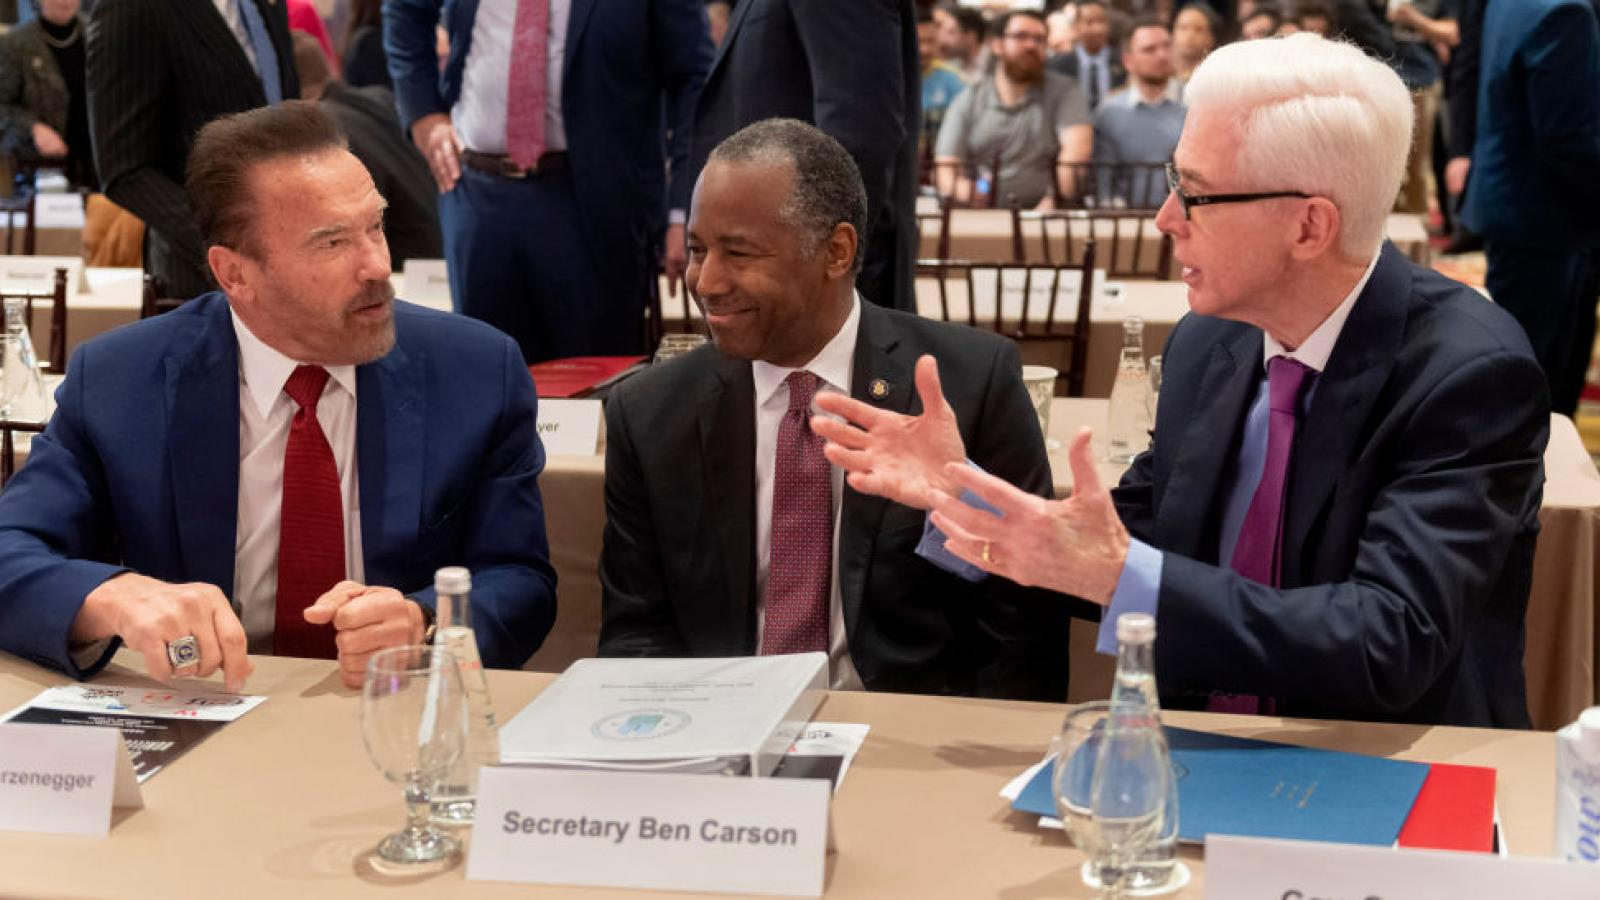 Ben Carson, Arnold Schwarzeneger, Gray Davis at USC homelessness forum in Los Angeles